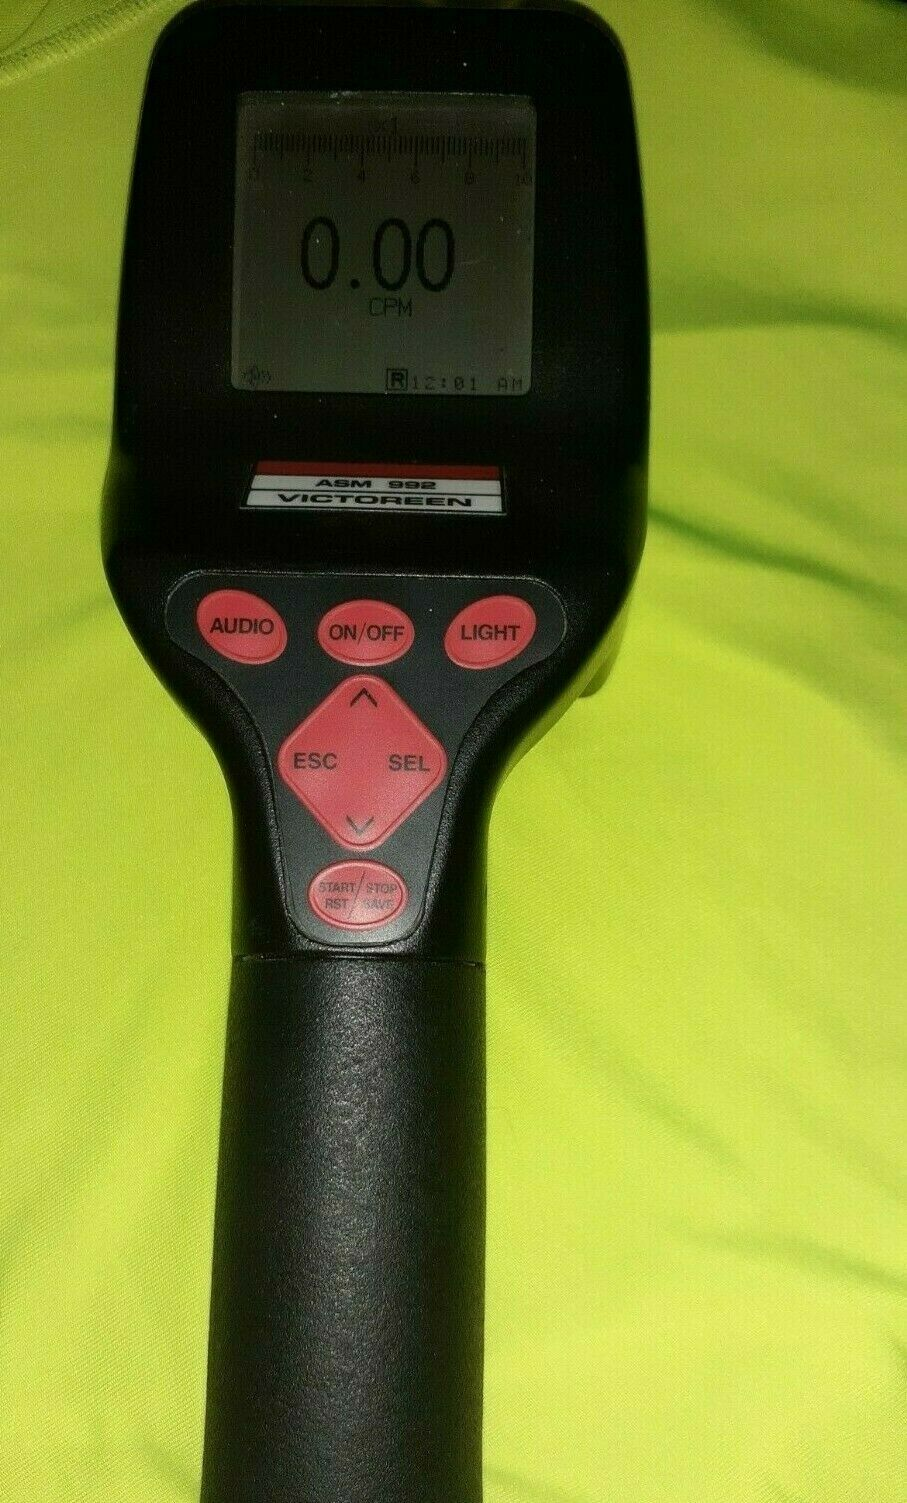 s l1600 - geiger counter radiation detector fluke biomed victoreen asm 992